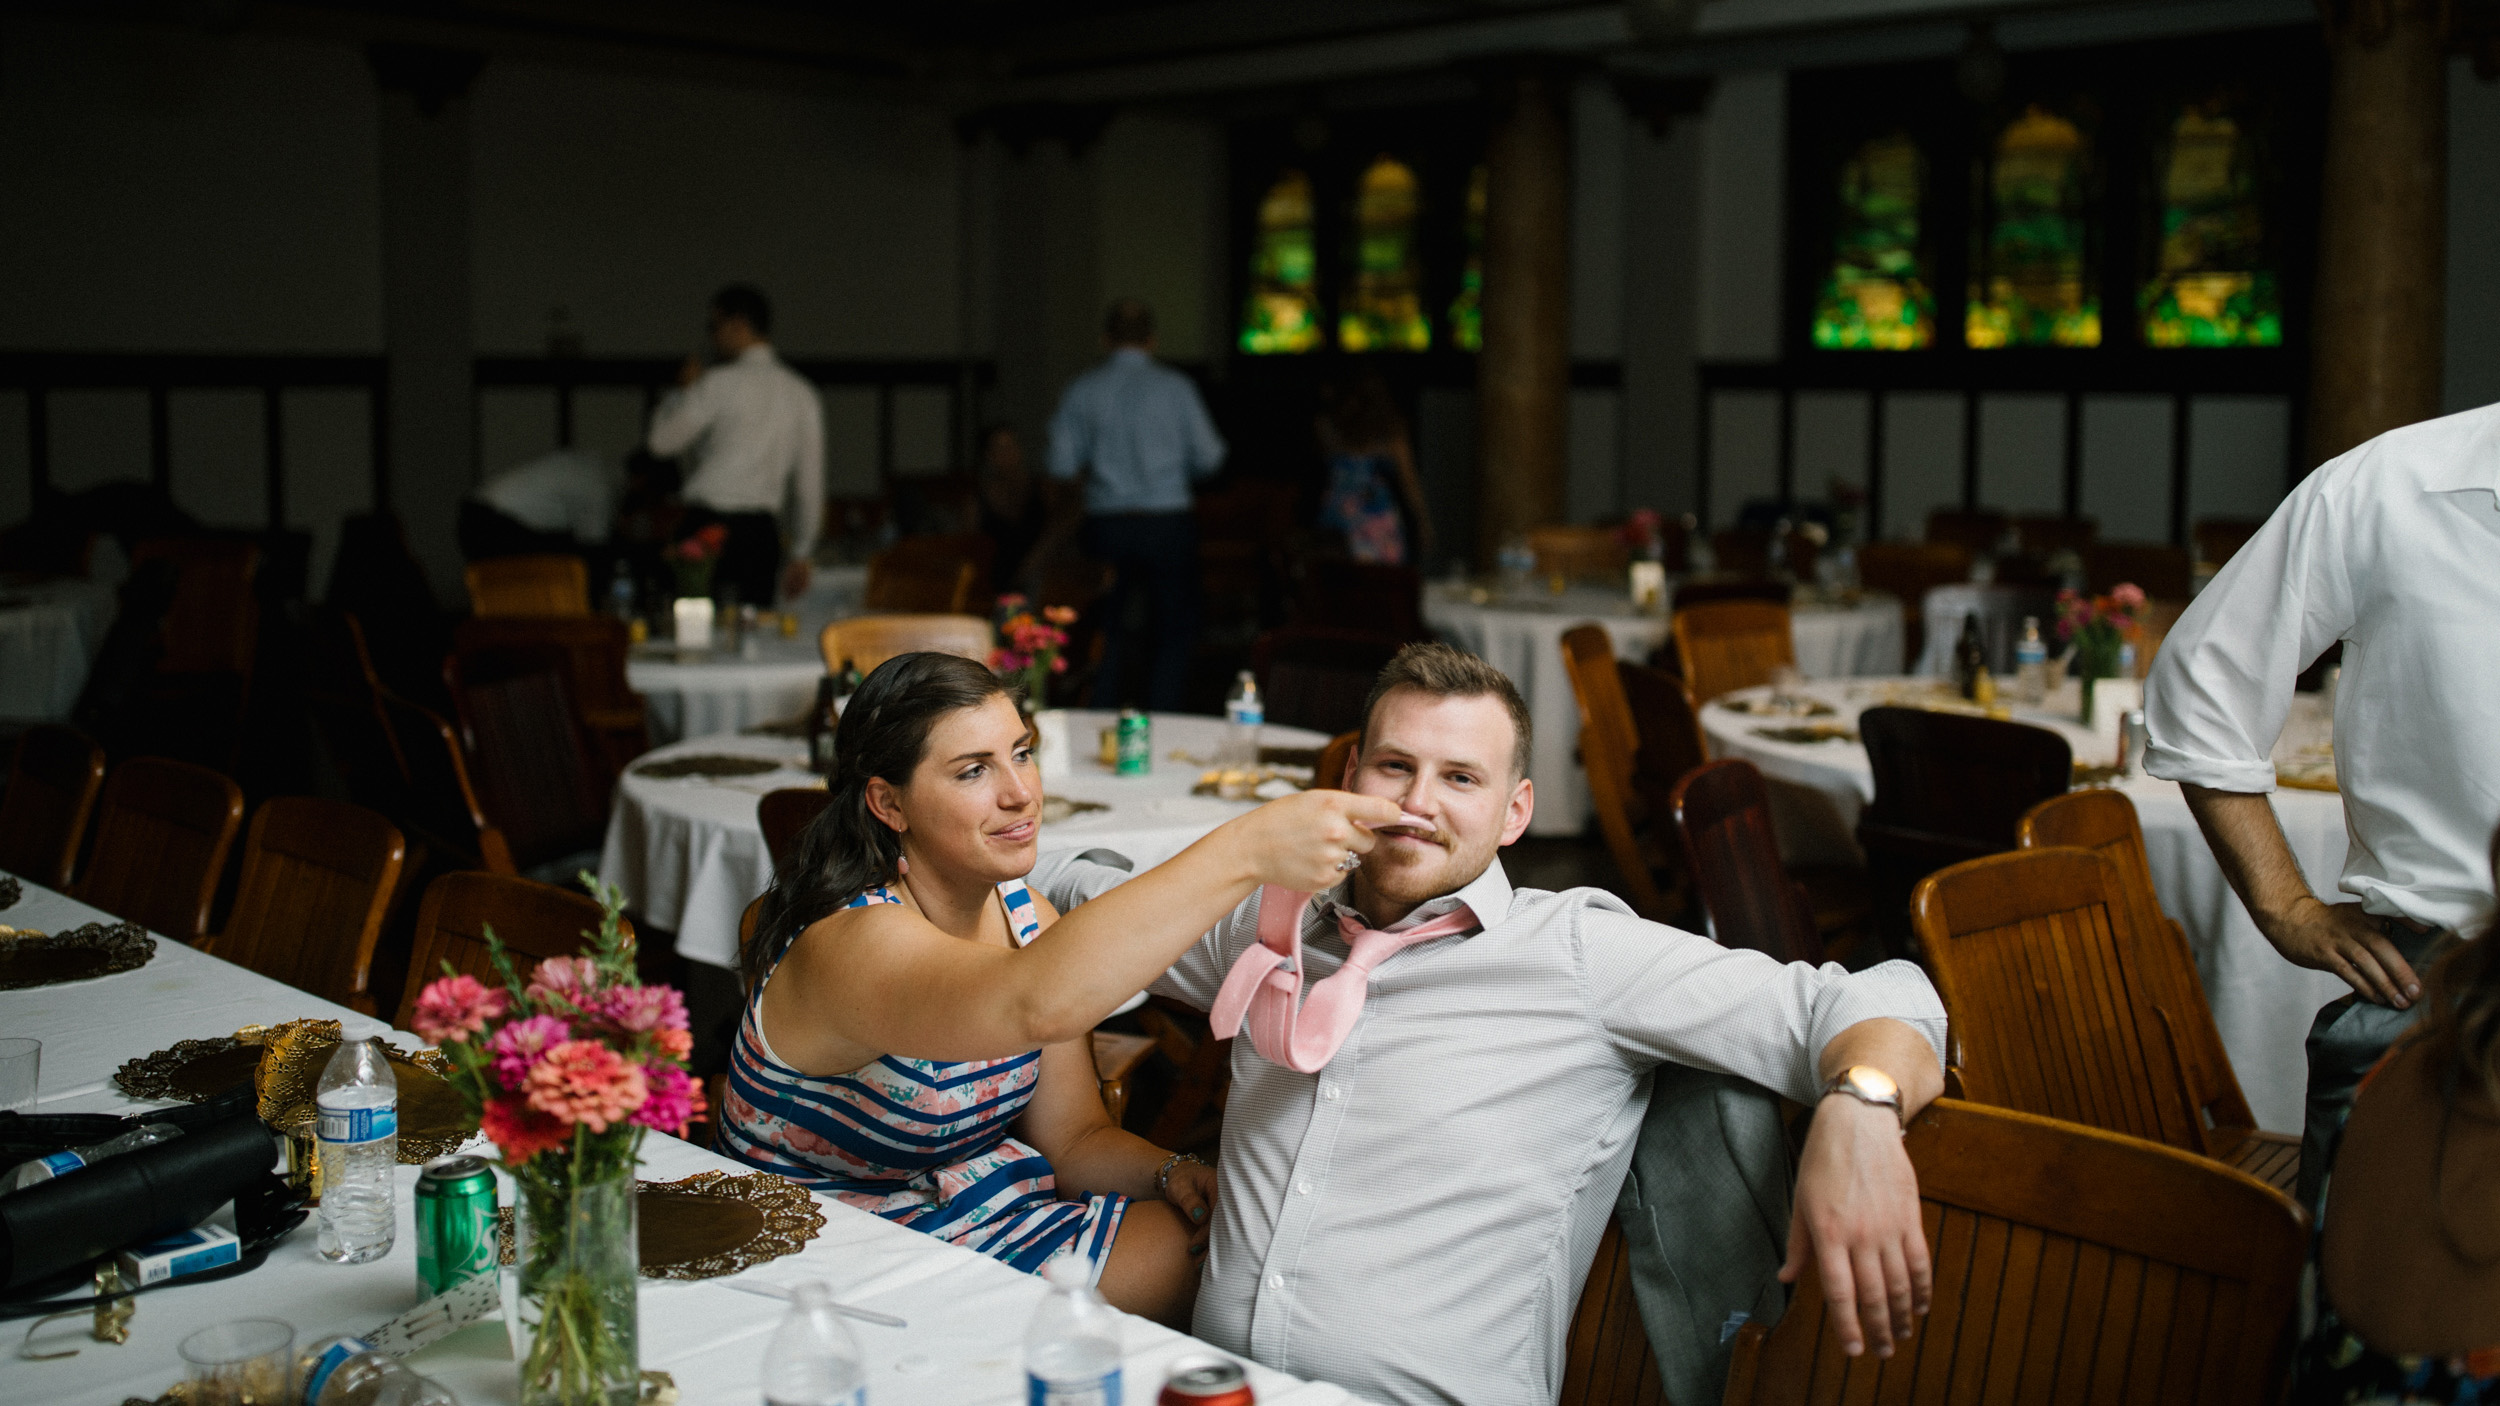 alec_vanderboom_john_micahel_lucy_kansas_city_wedding_photographer-0076.jpg